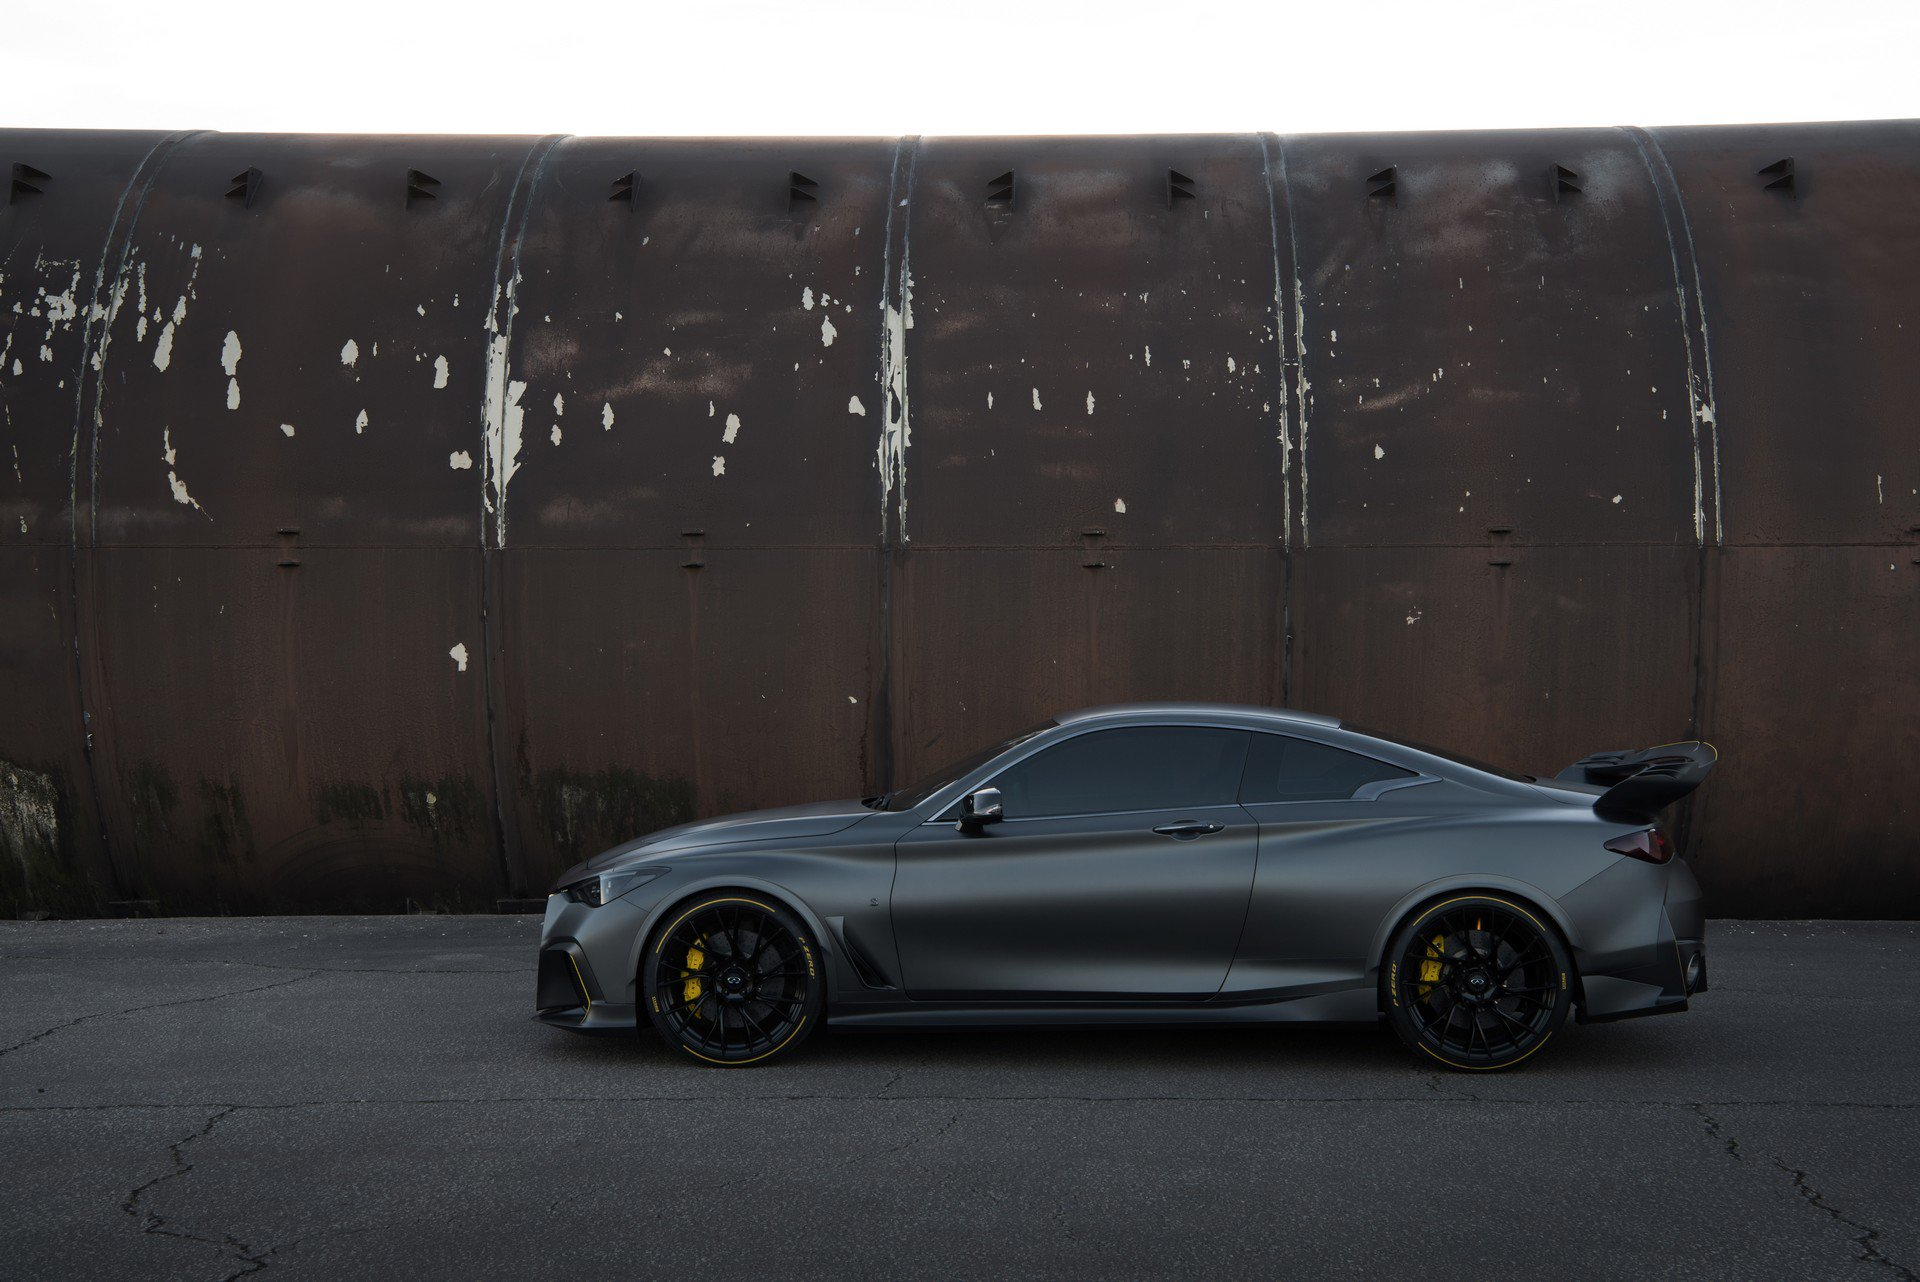 Infiniti Project Black S Prototype (22)